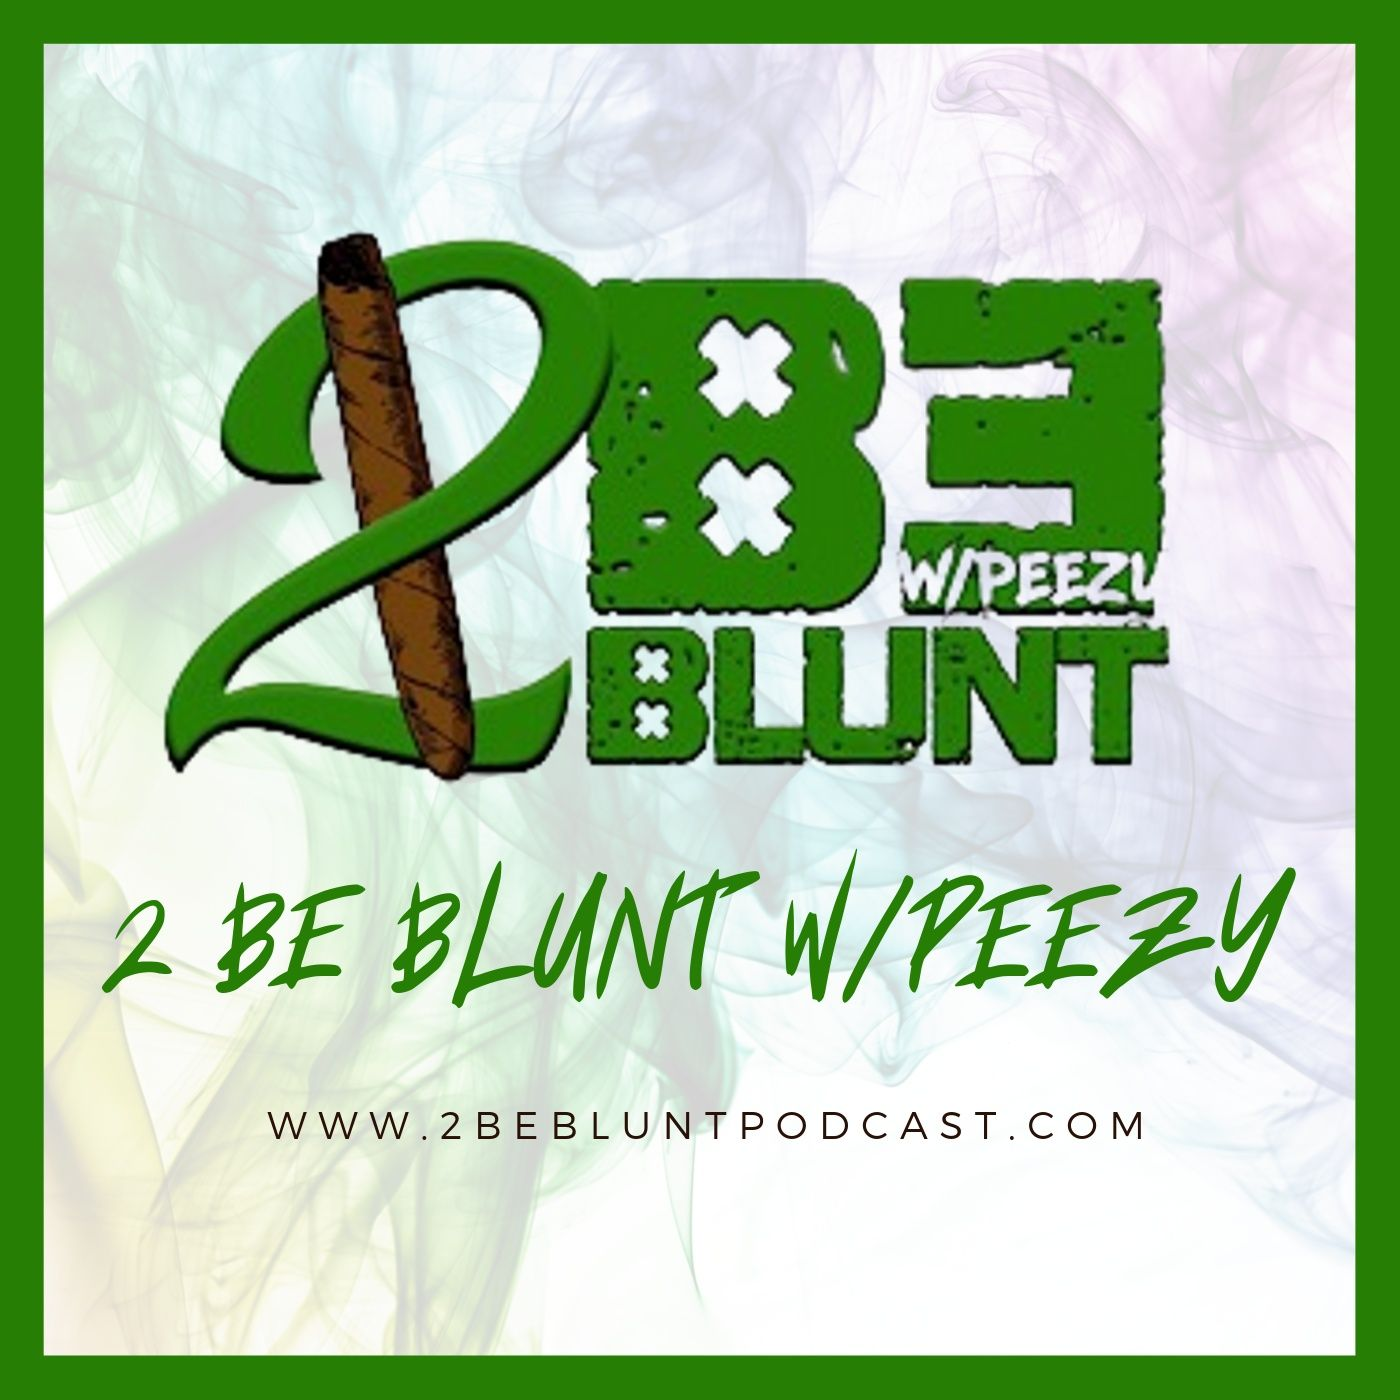 Episode 15: StonedBucks